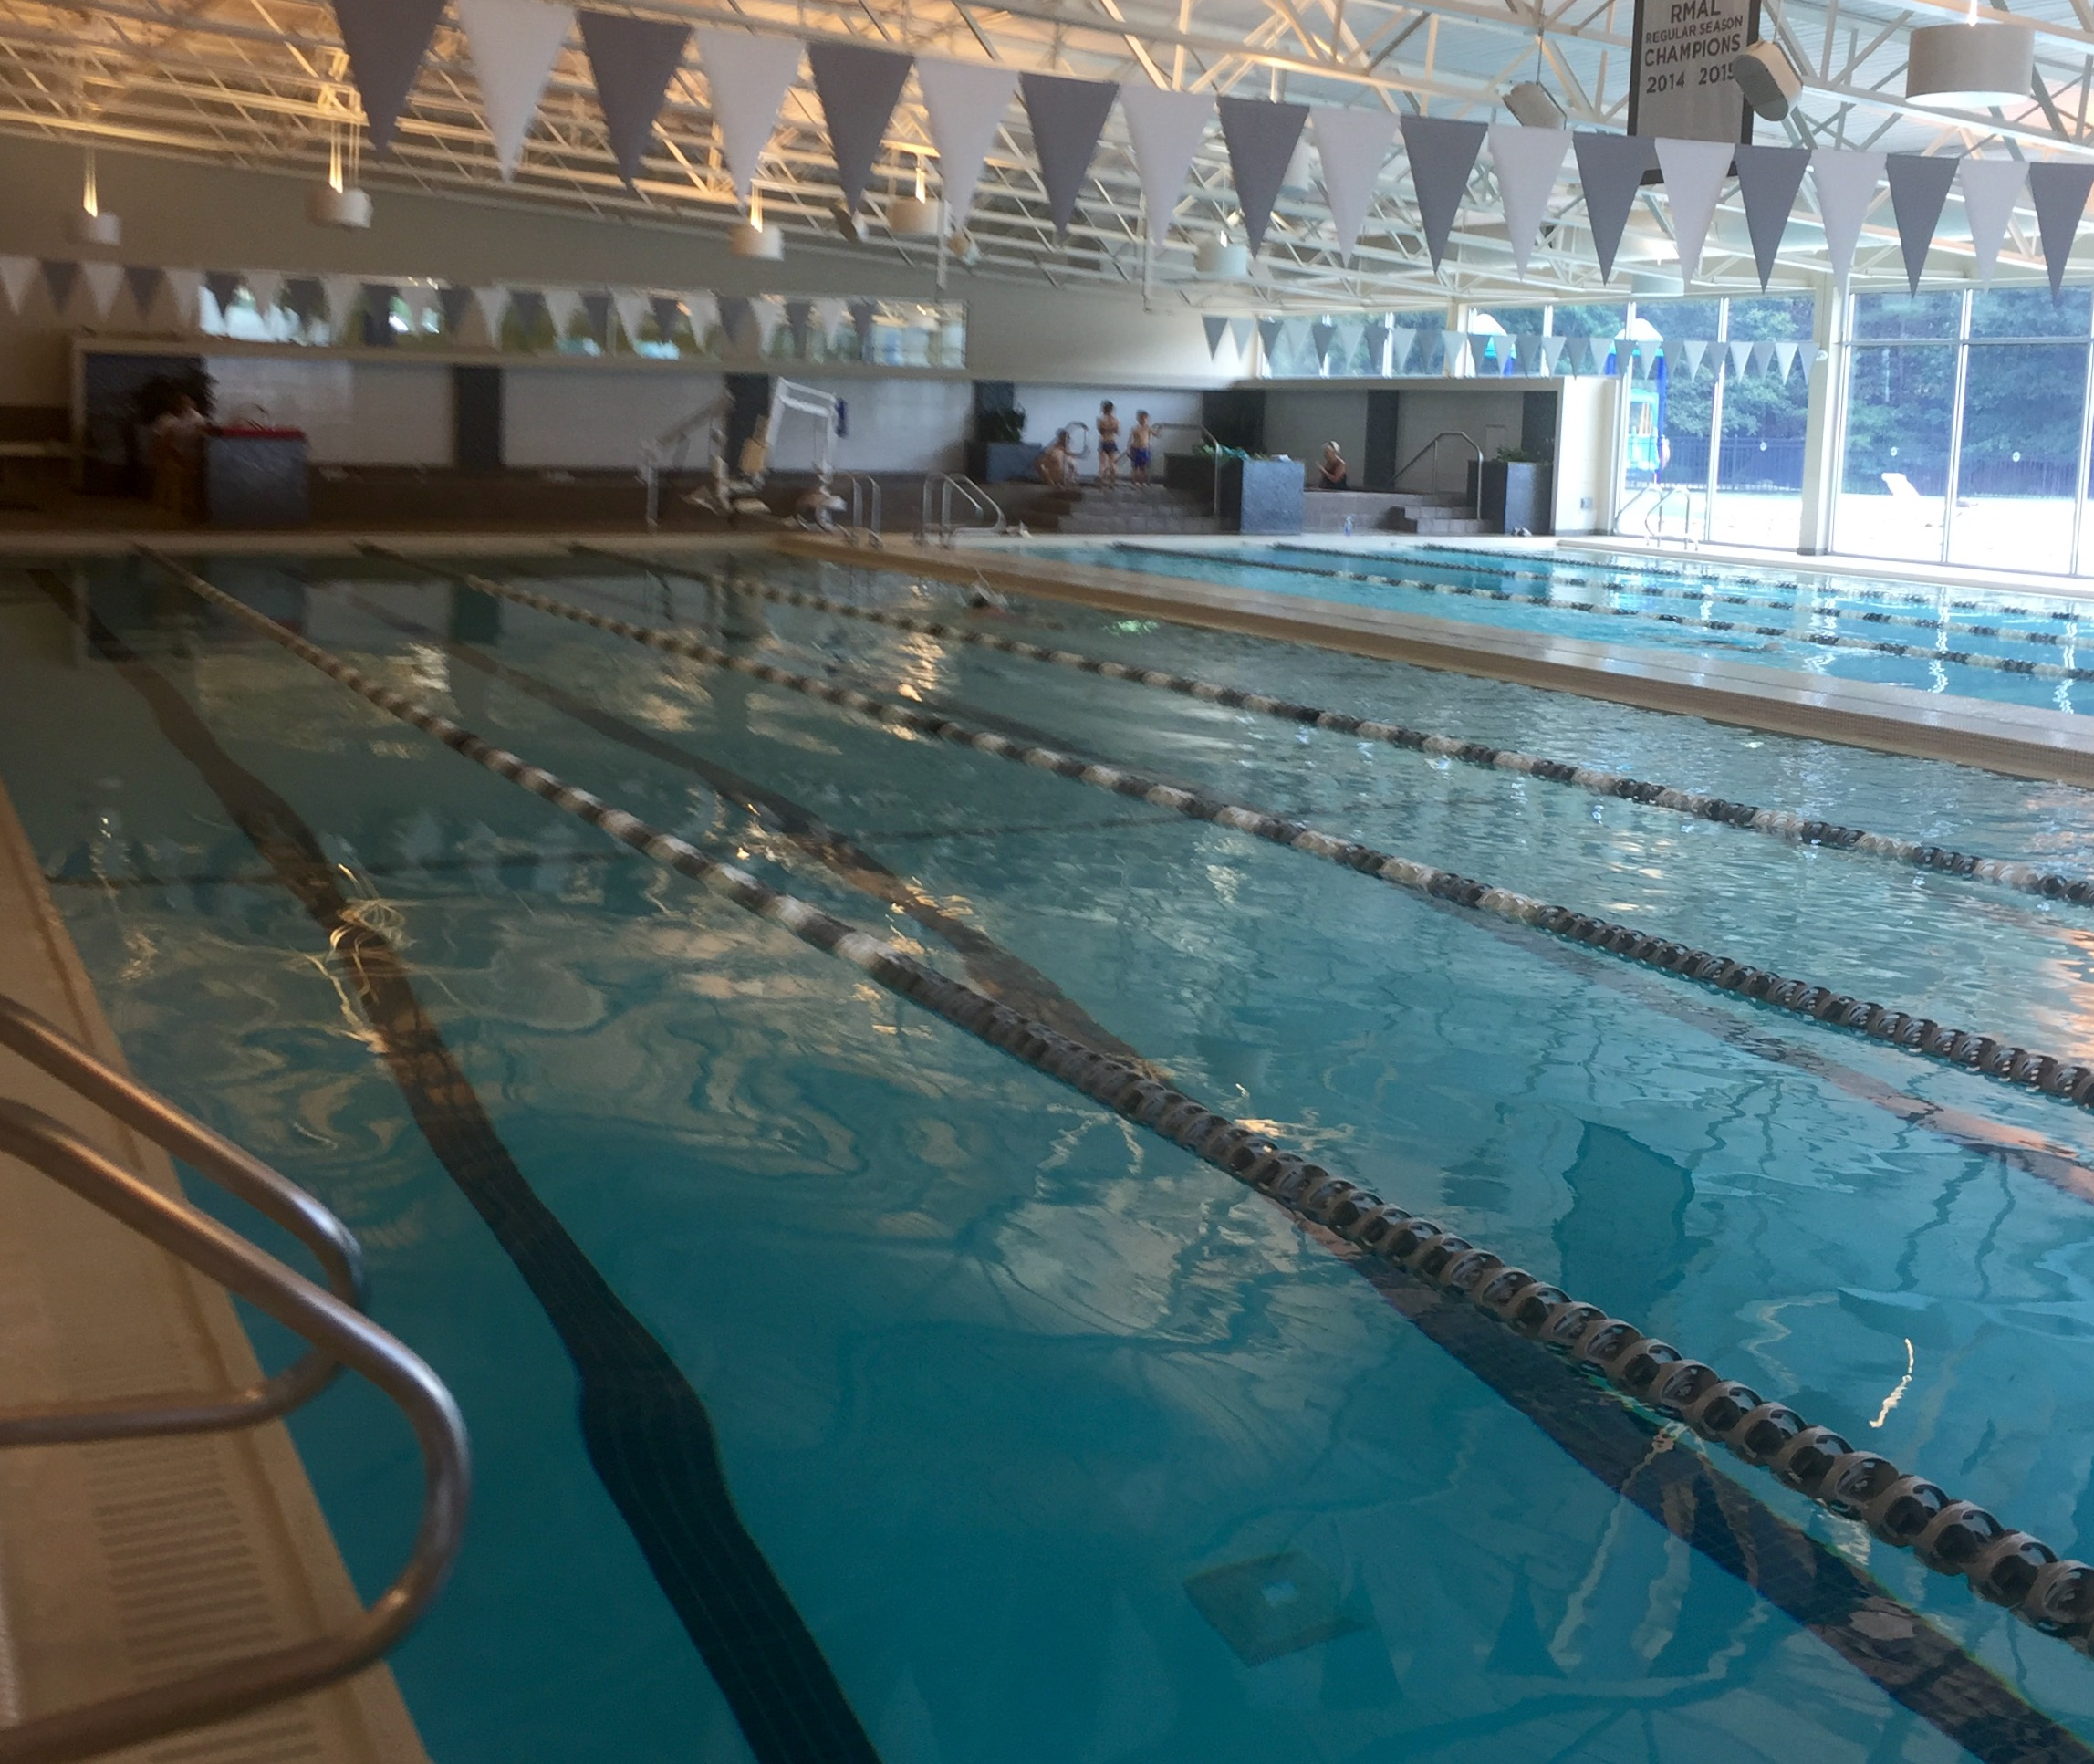 lpi tech bulletin: lightning and aquatics safety for indoor pools